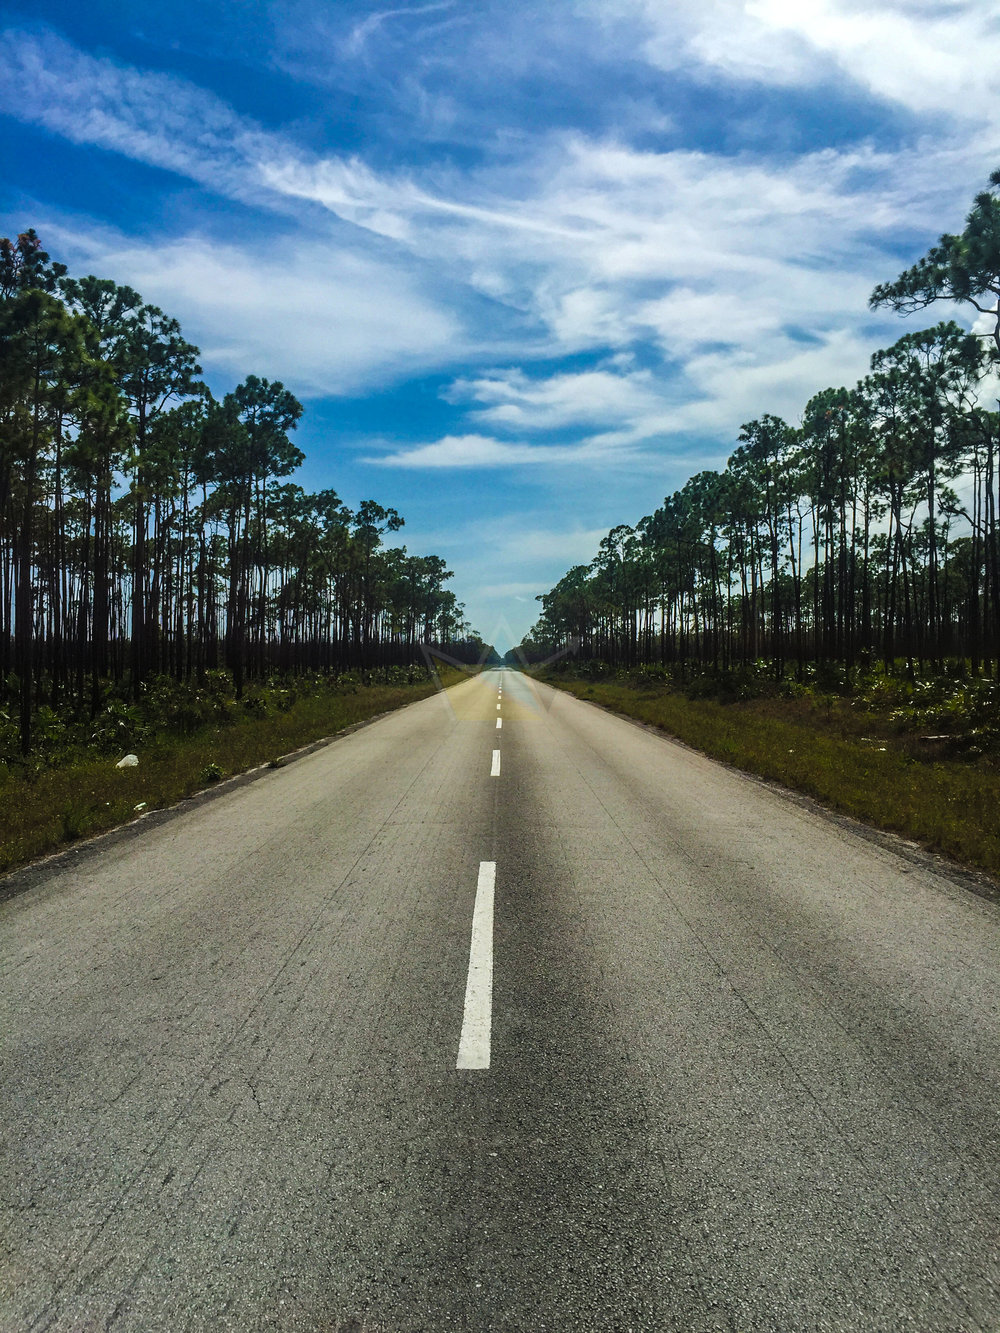 Grand Bahama Highway & Pine Forests